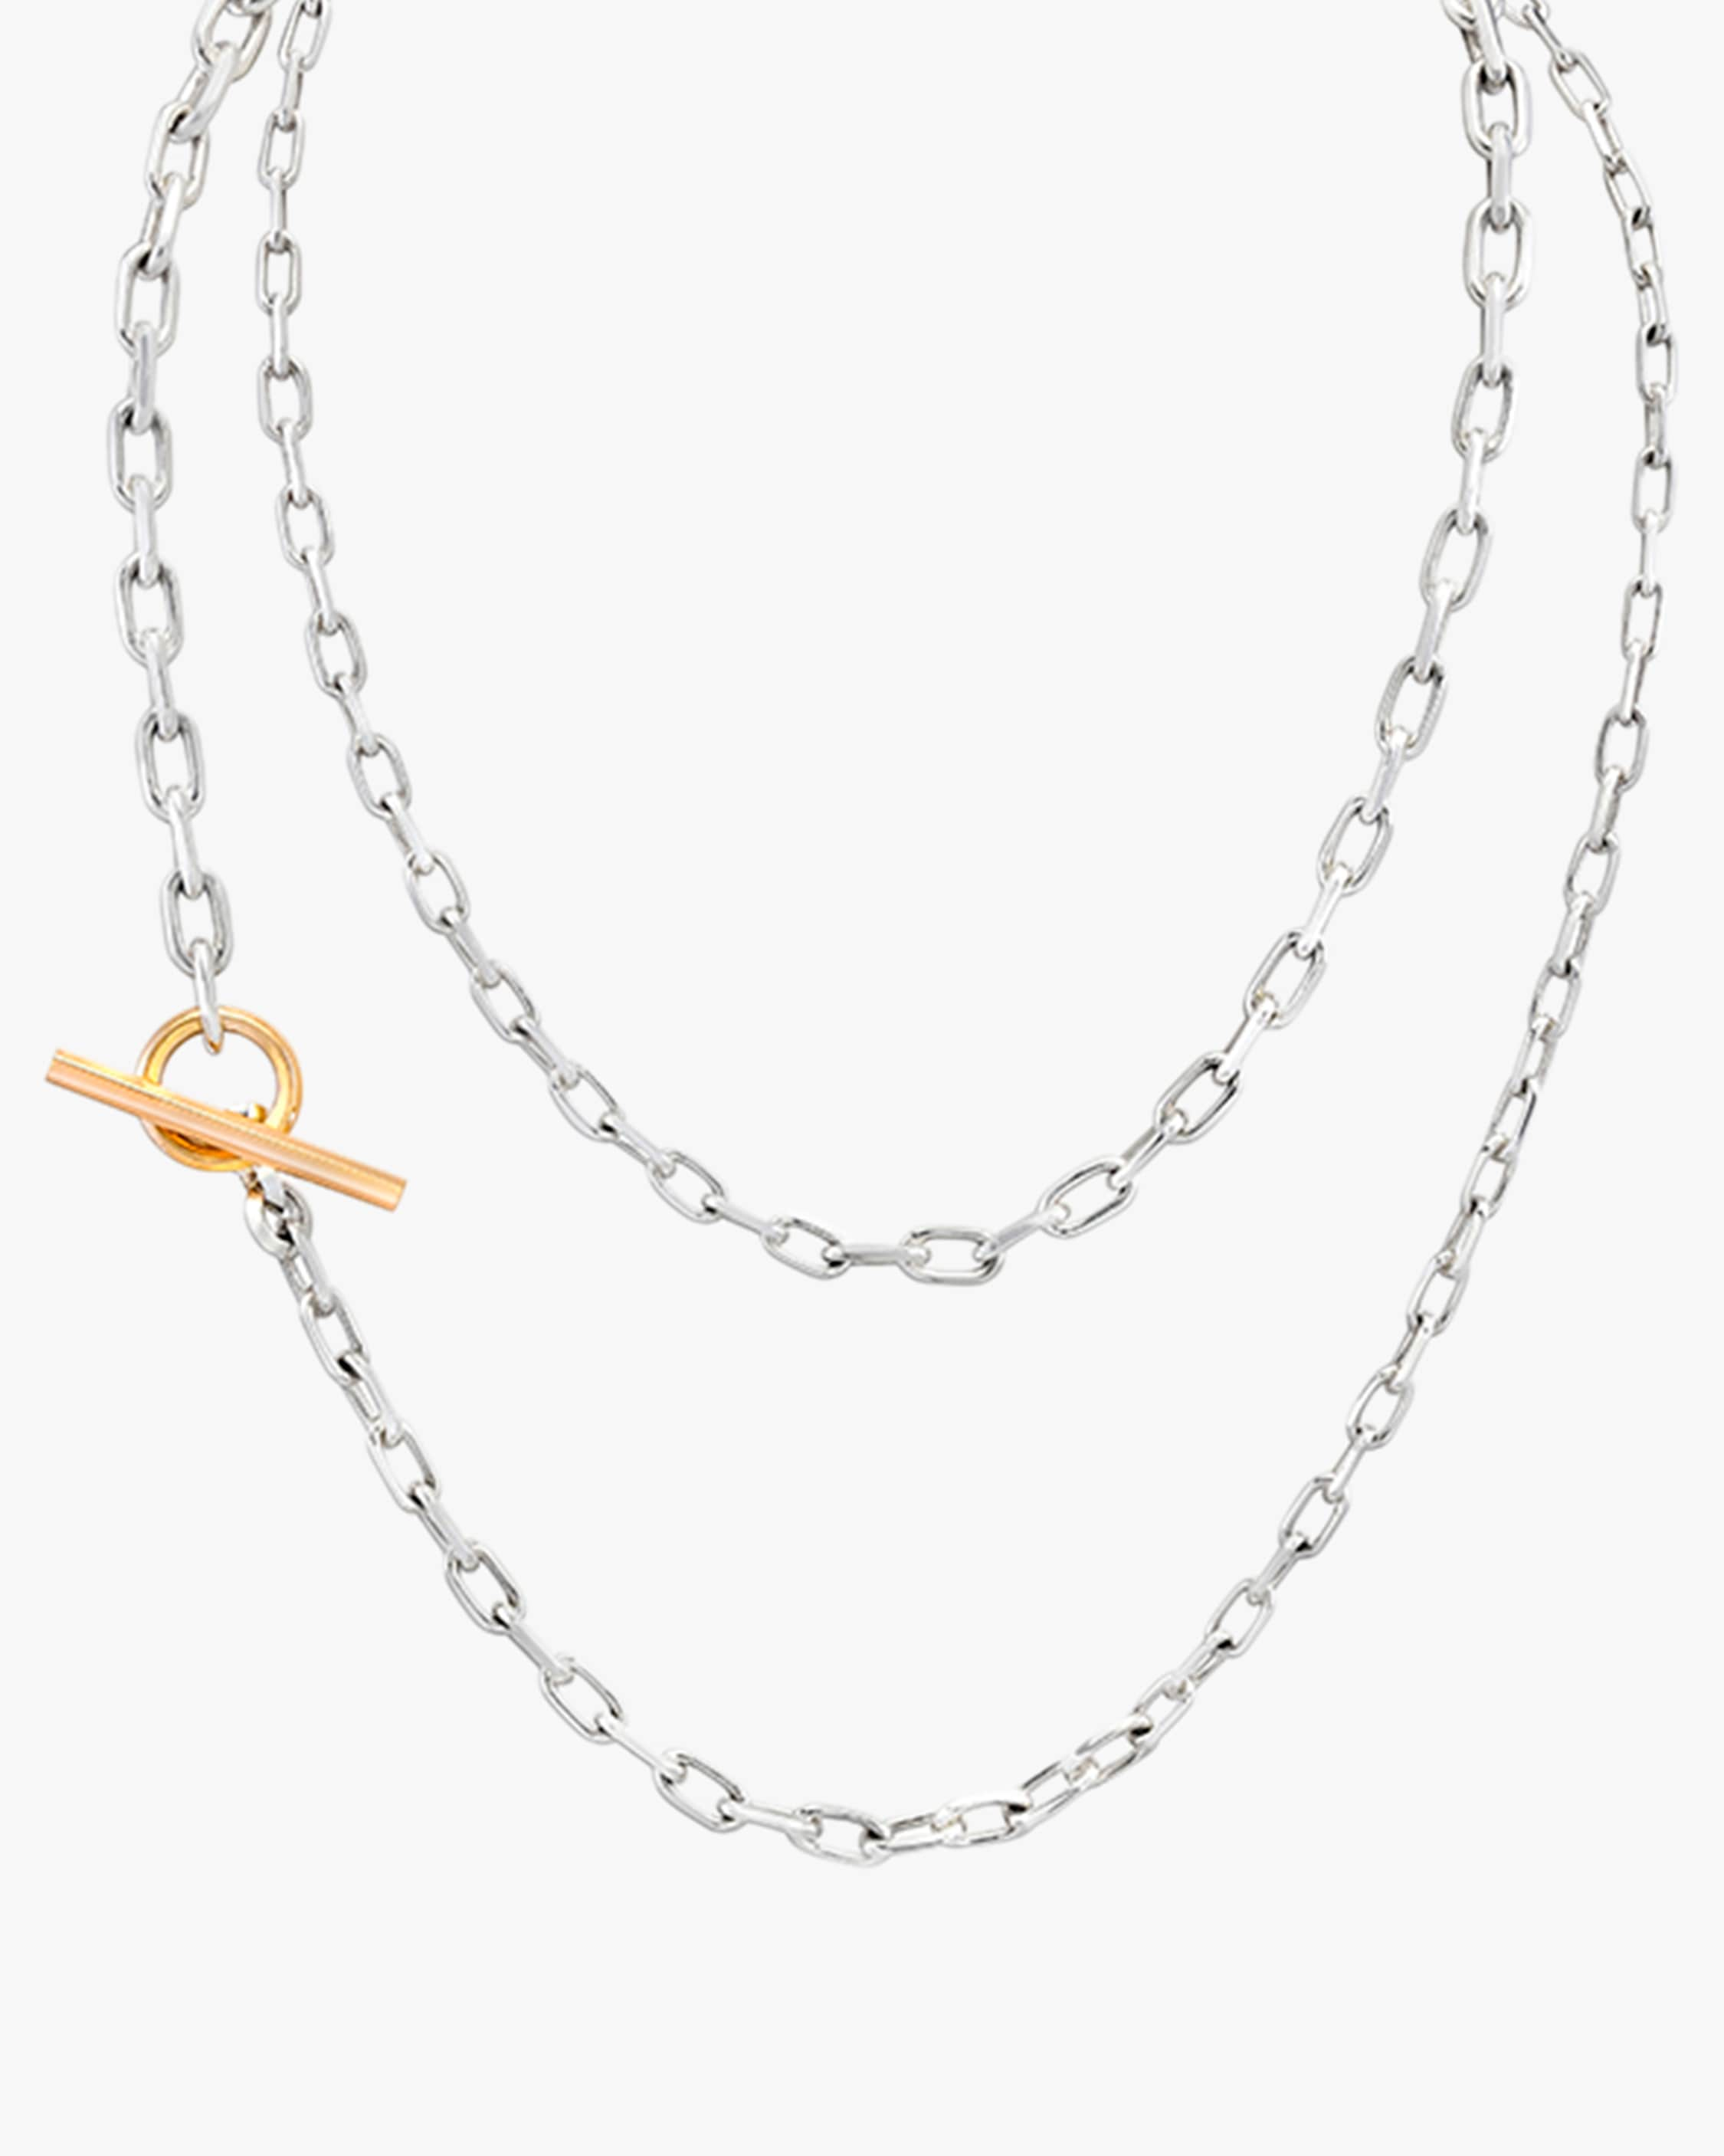 Walters Faith Saxon Graduated Chain Link Necklace   Rose Gold/sterling Silver